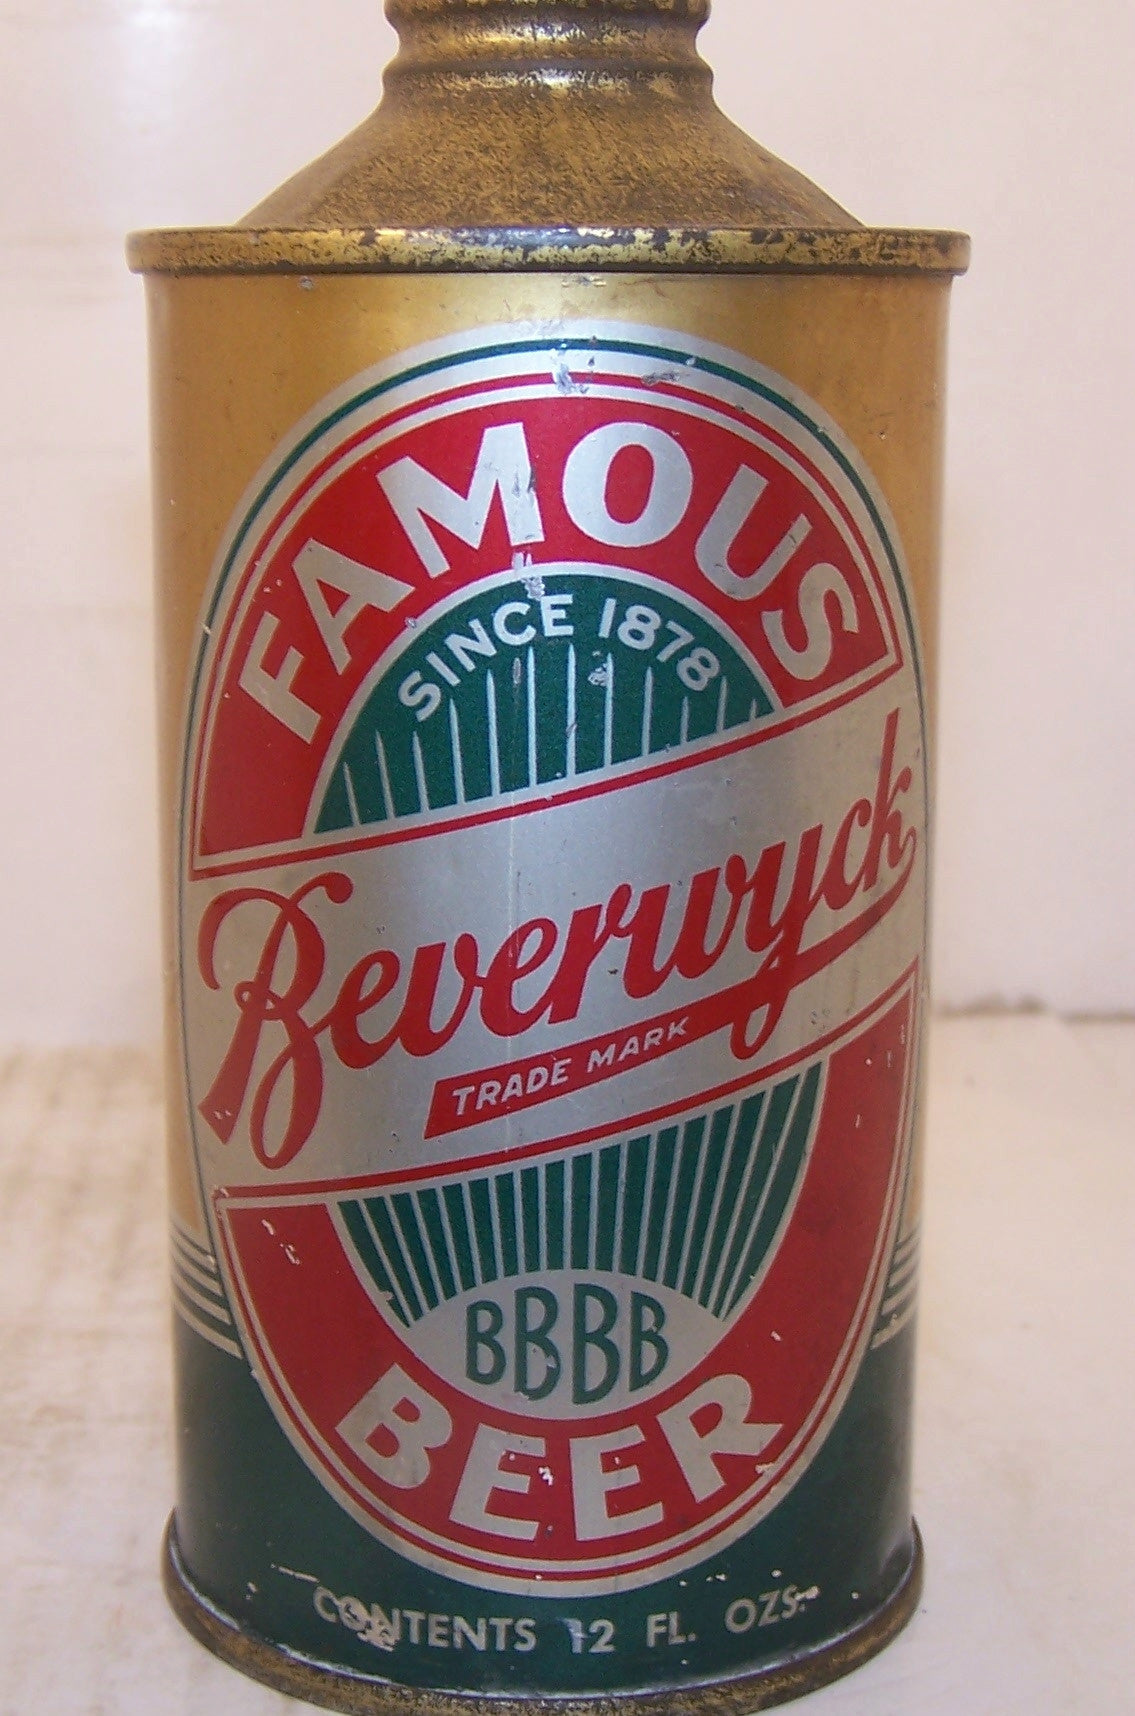 Beverwyck Famous Beer, USBC 152-11 Grade 1/1- Traded on 2/22/15